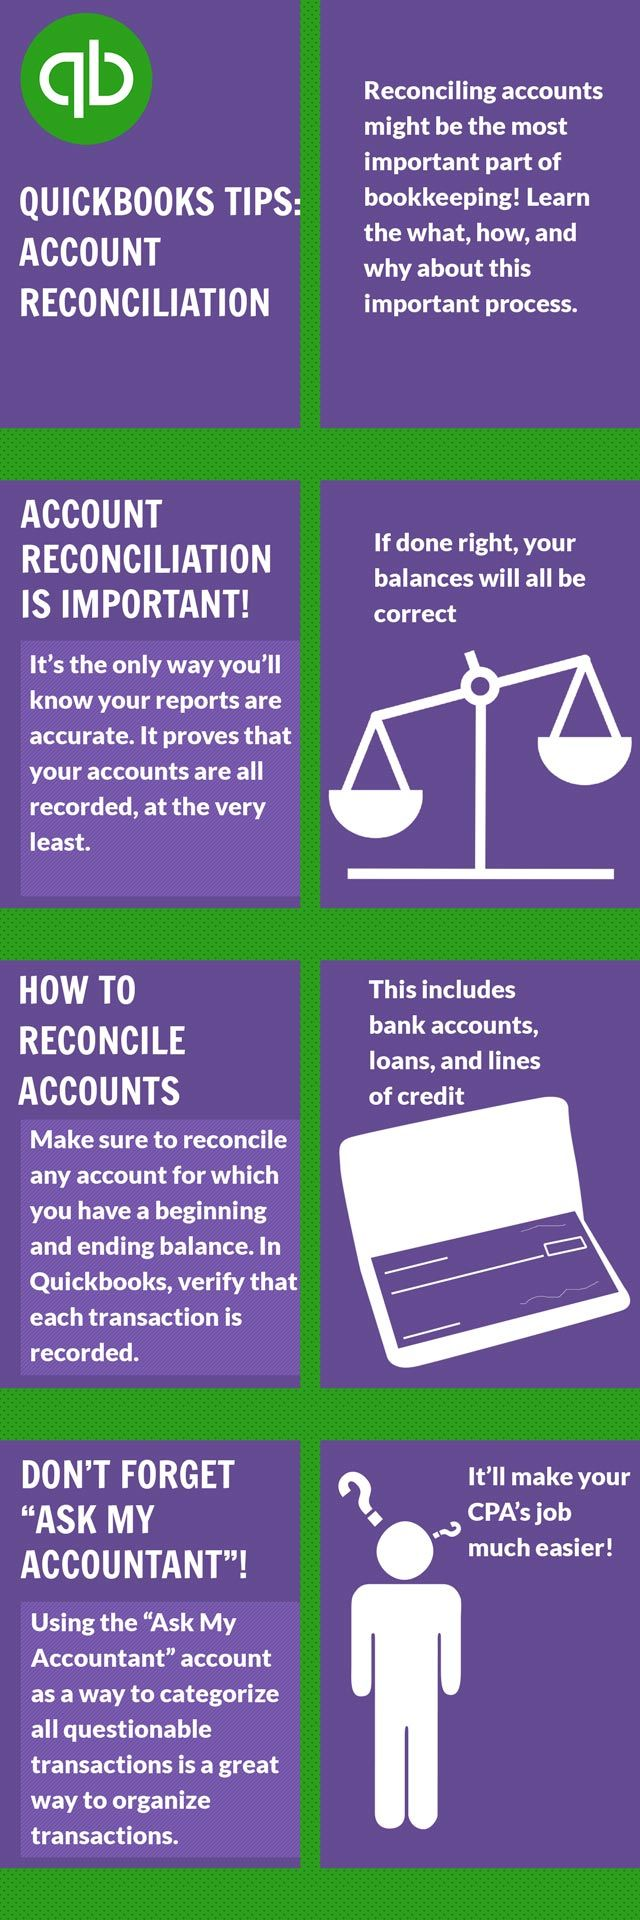 Quickbooks offers tips for reconciling: